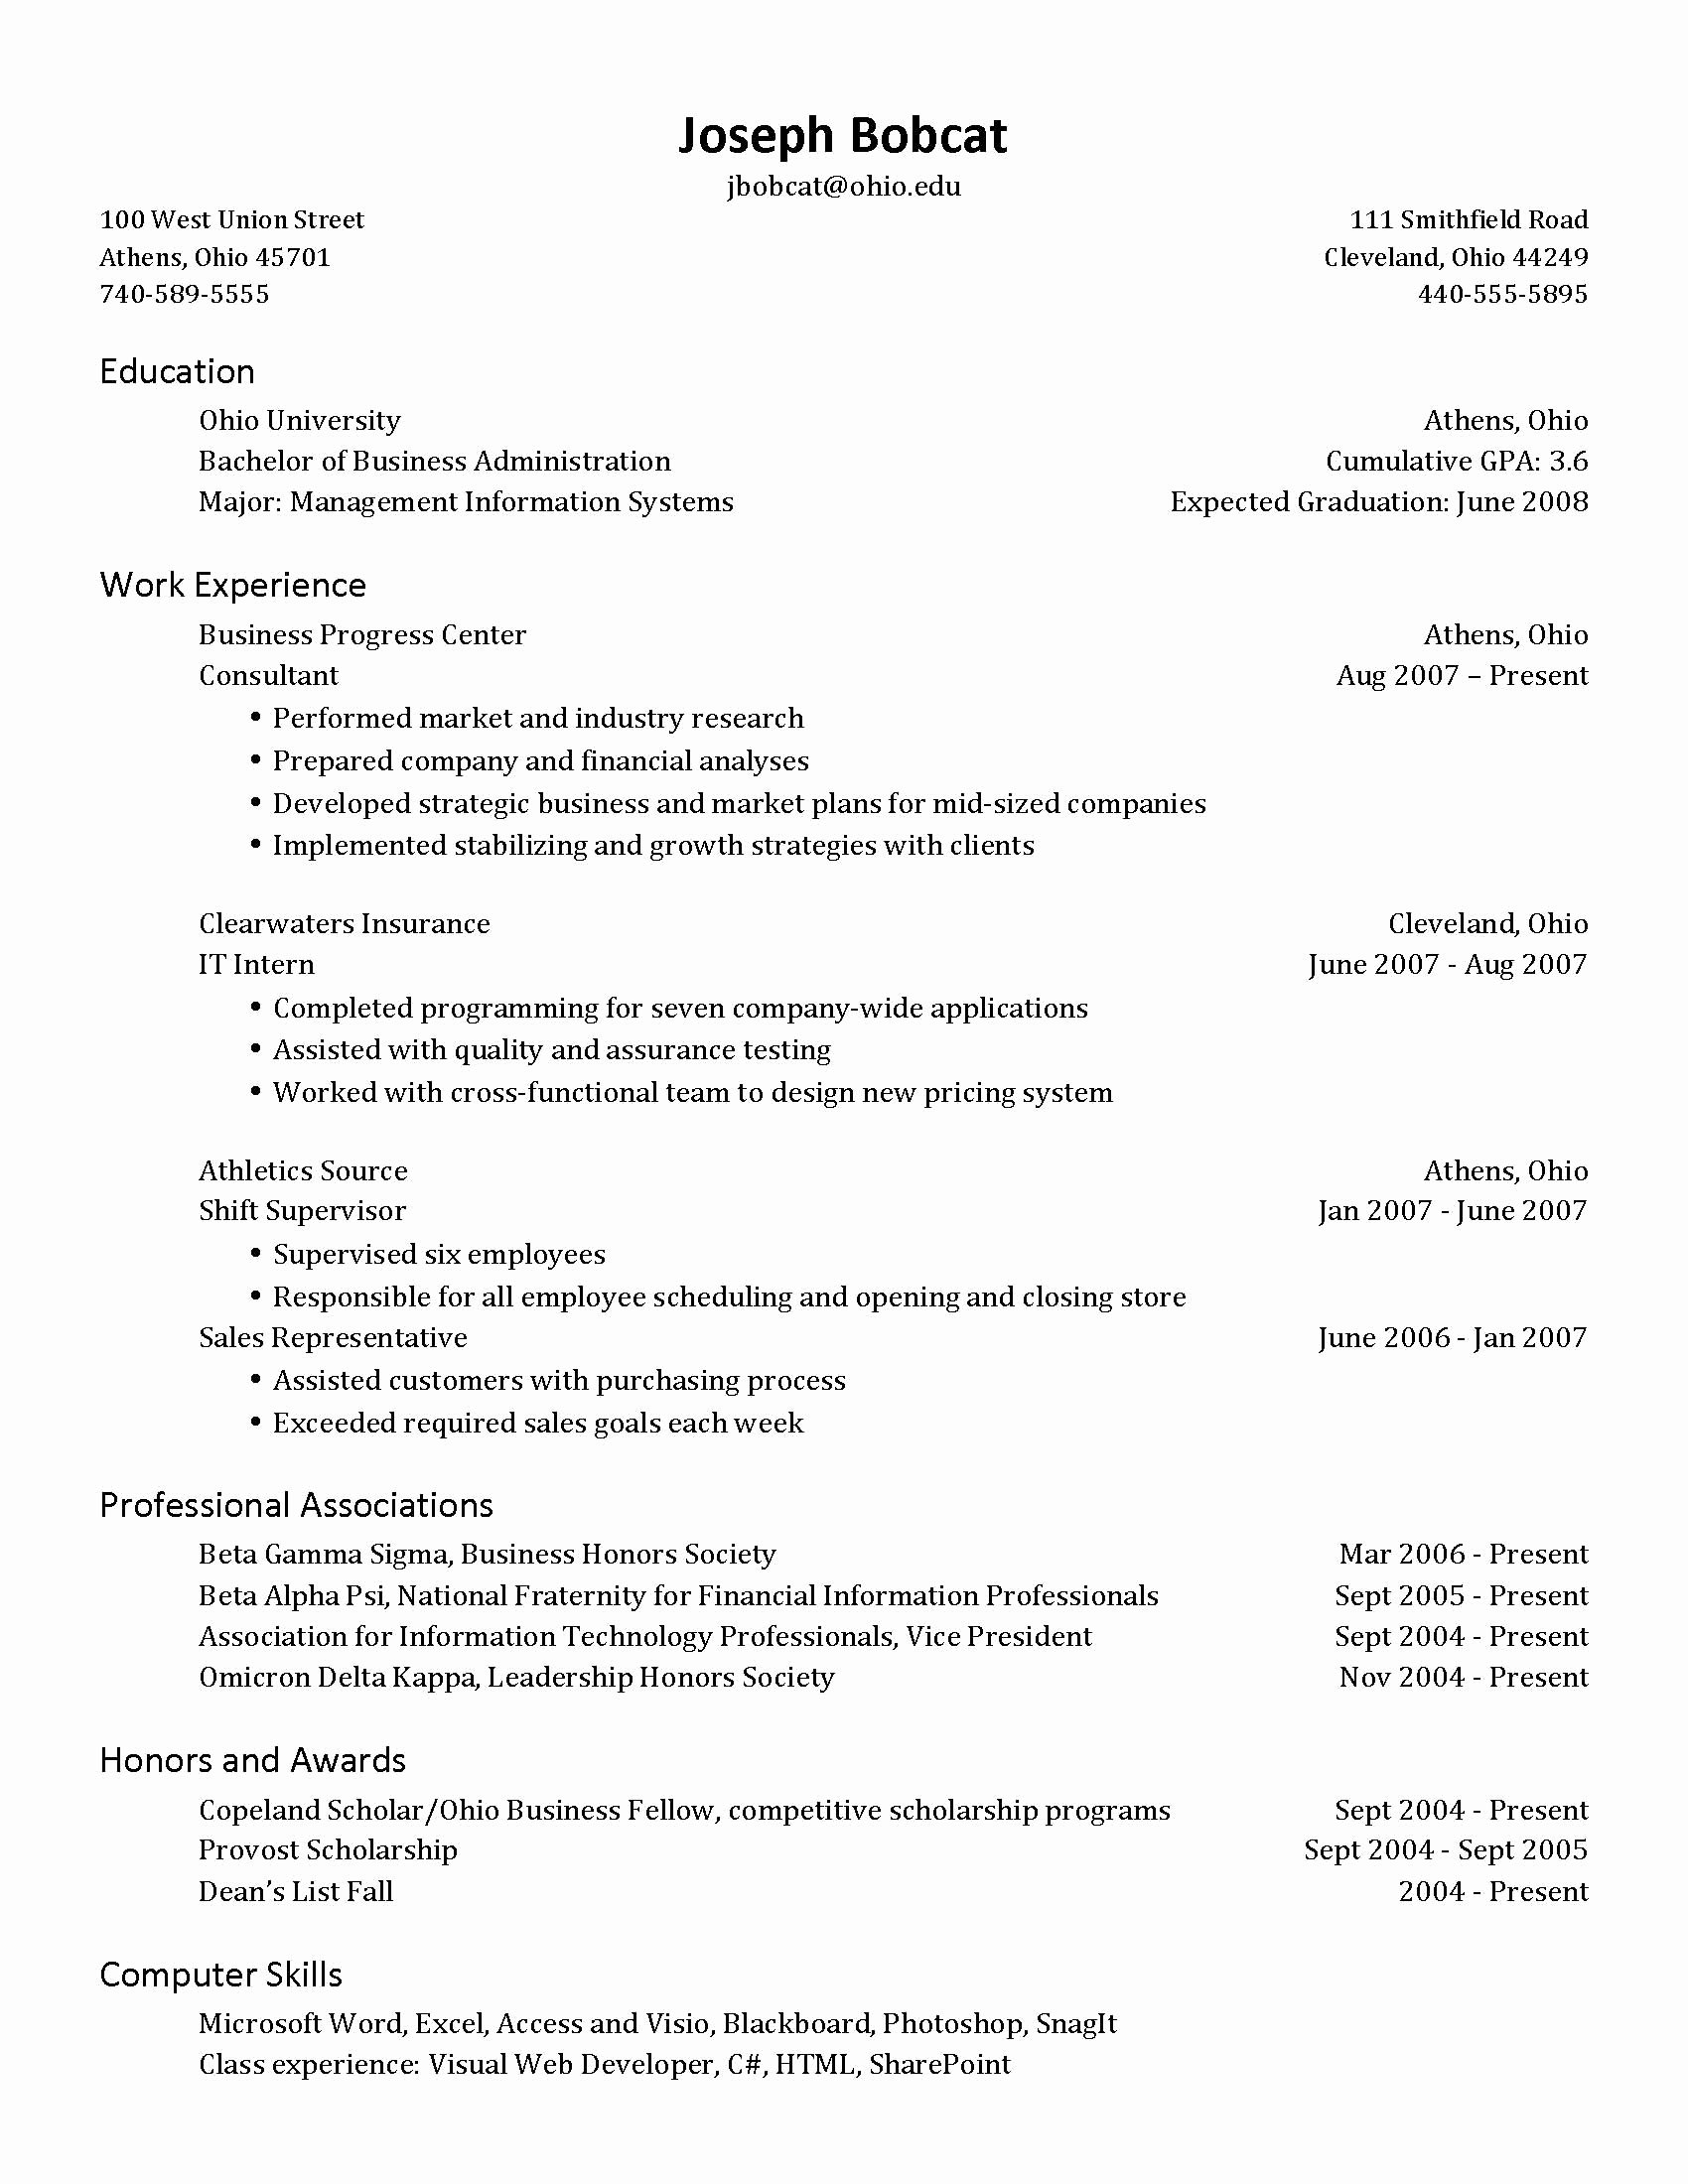 Anticipated Graduation Date On Resume Unique Establishing Credentials Networking and Placement